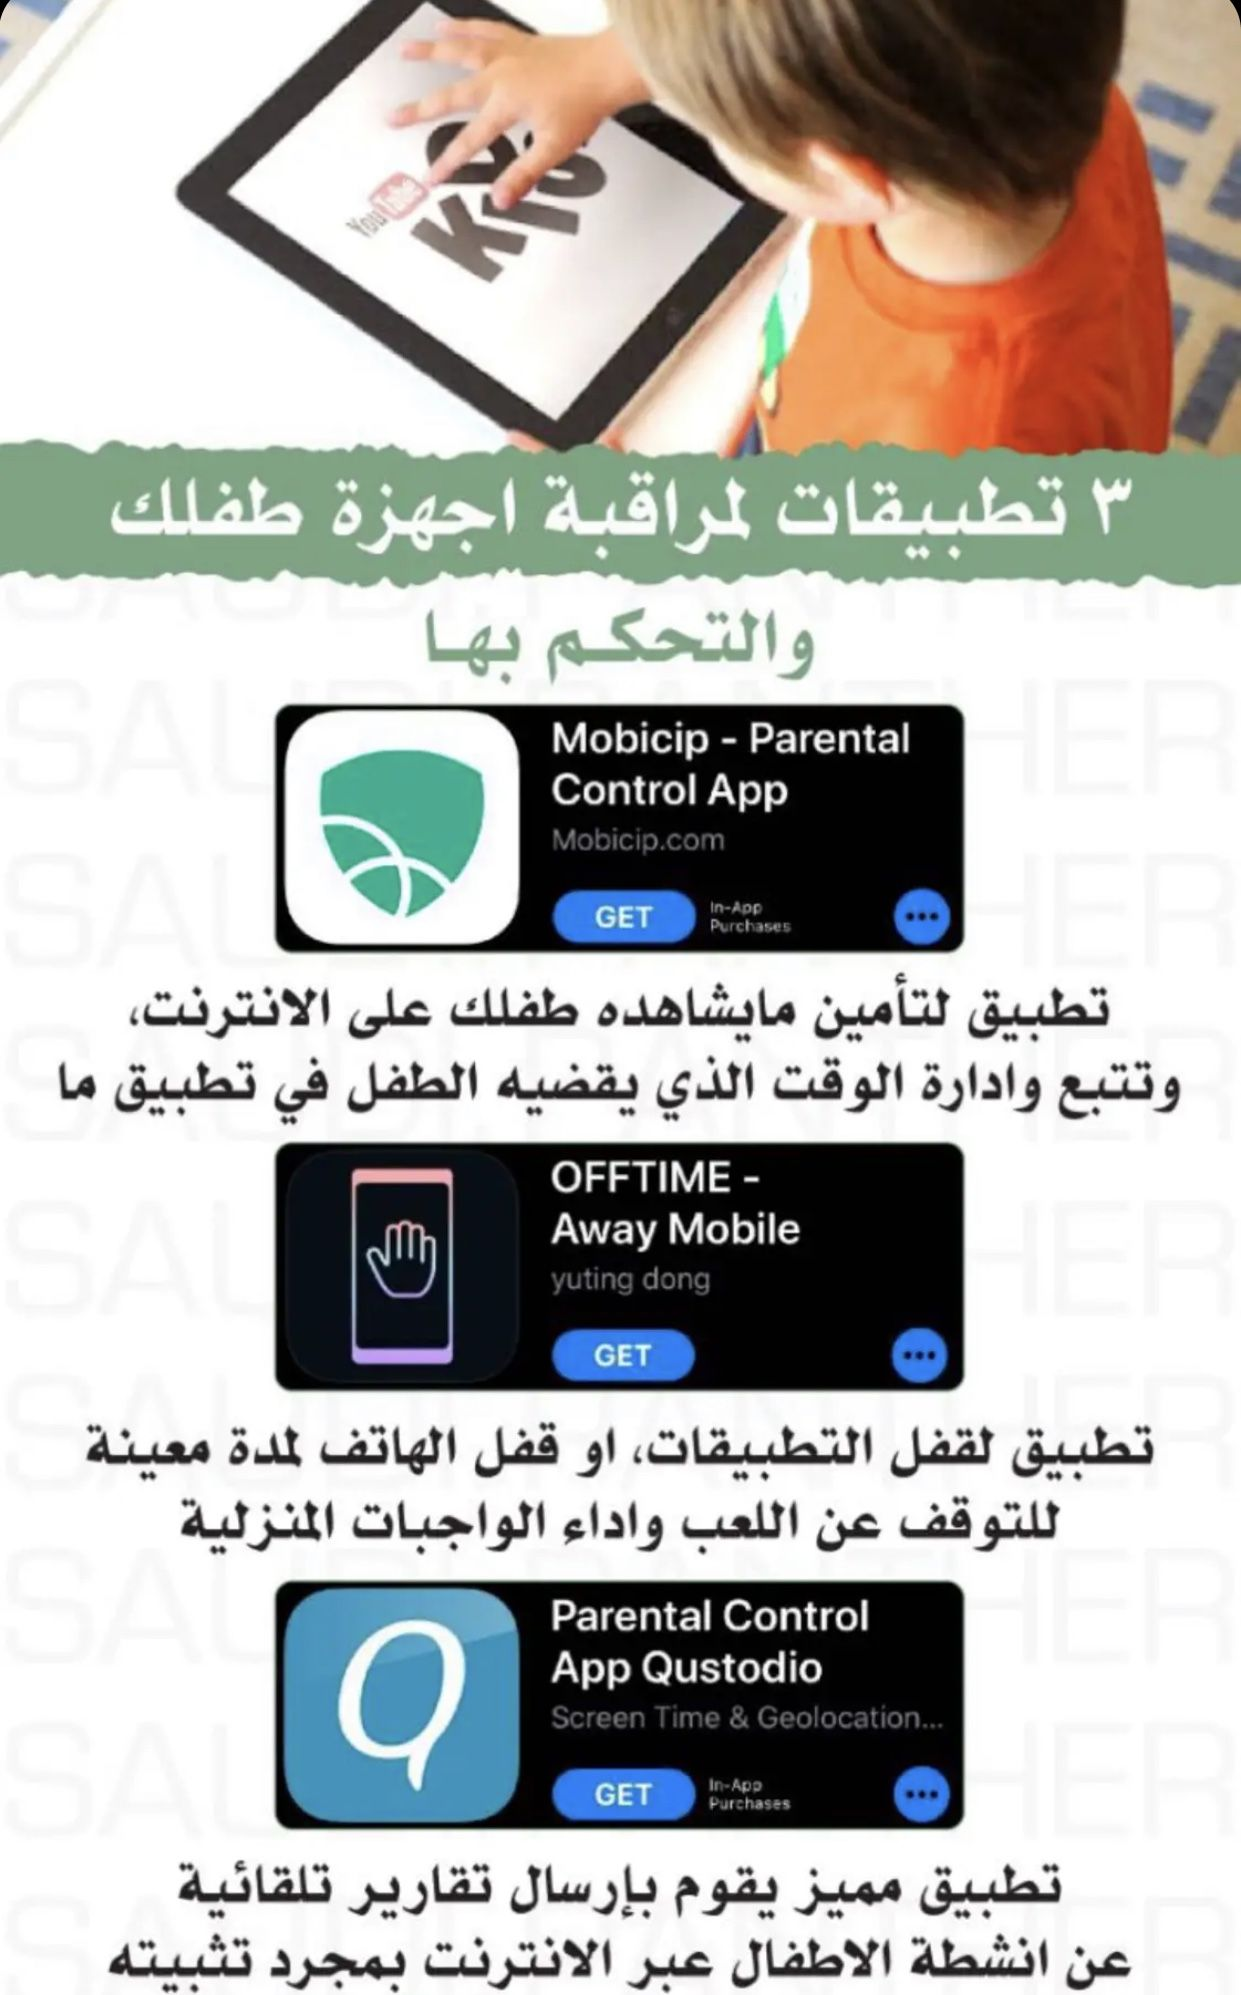 Pin by Re0o0iry on Informationsمعلومات in 2020 Parental